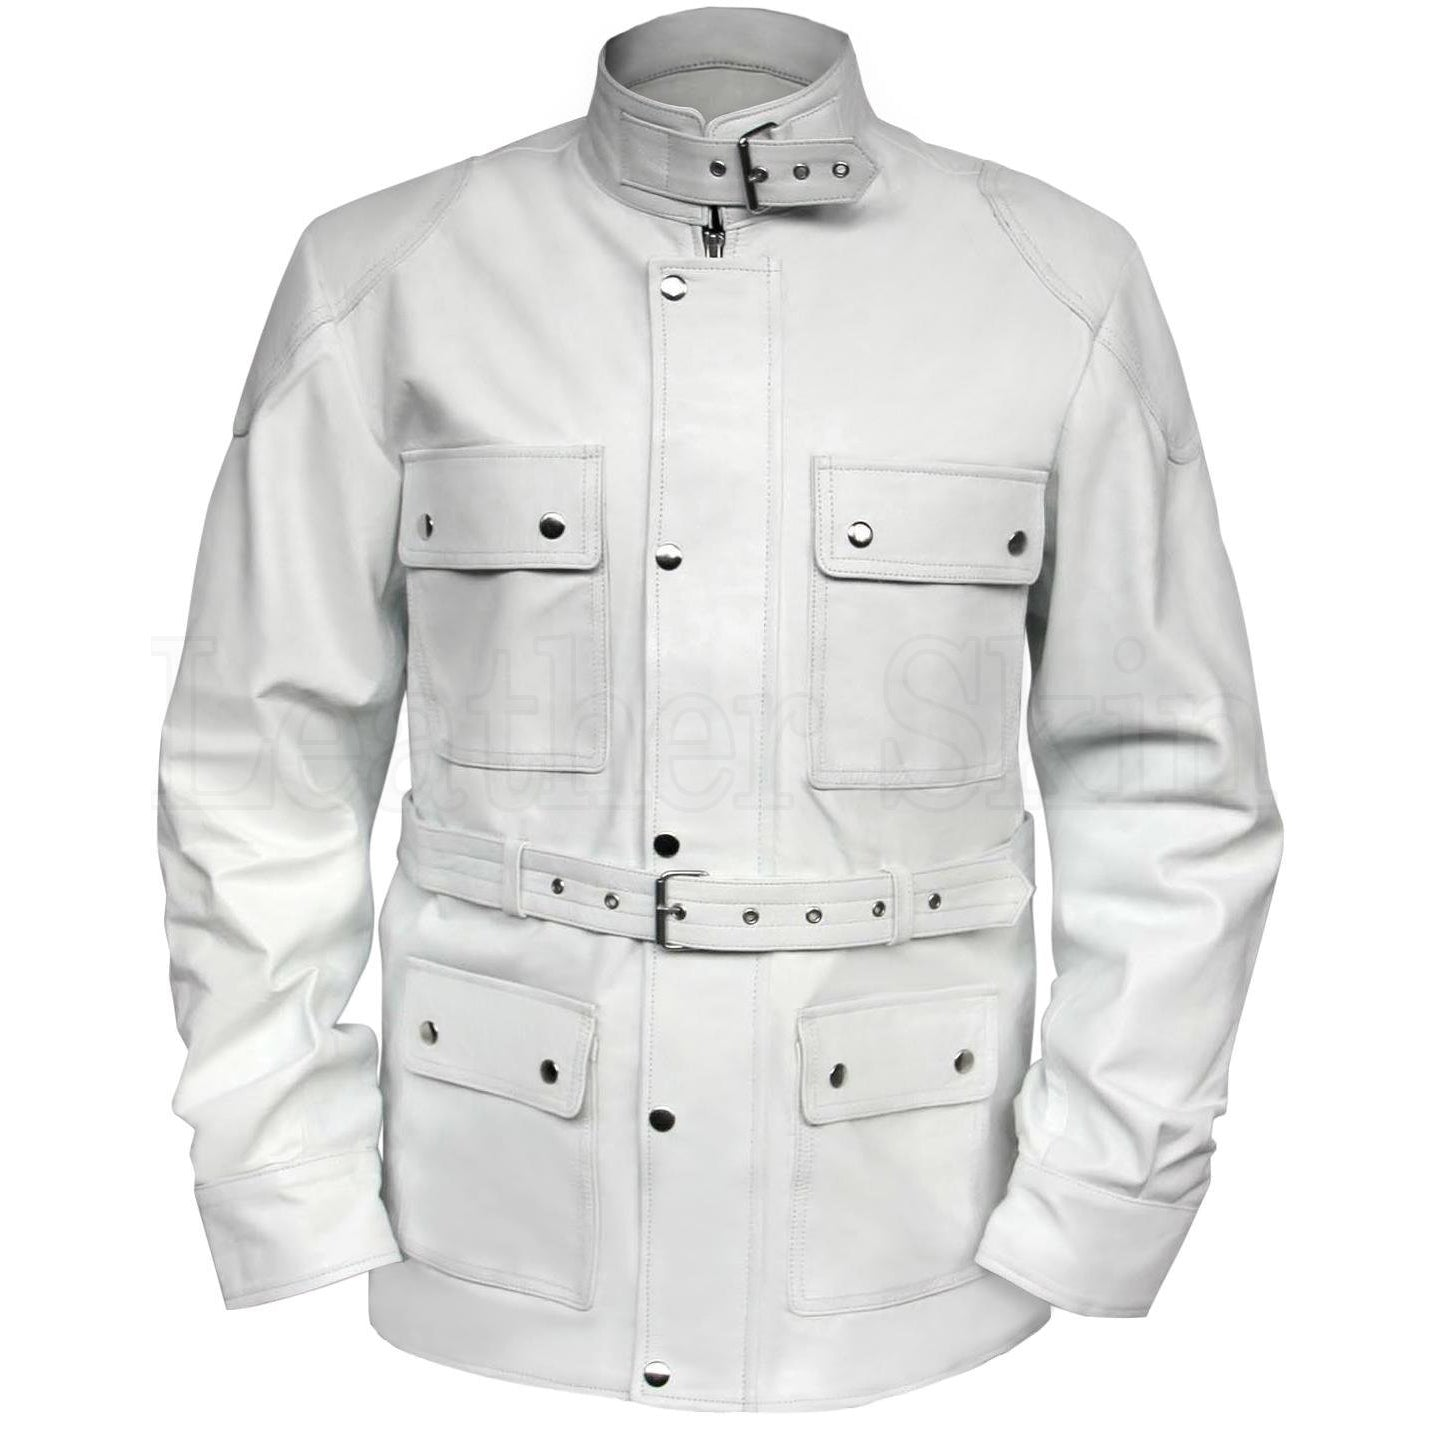 Unisex White Belted Genuine Leather Jacket with Front Pockets